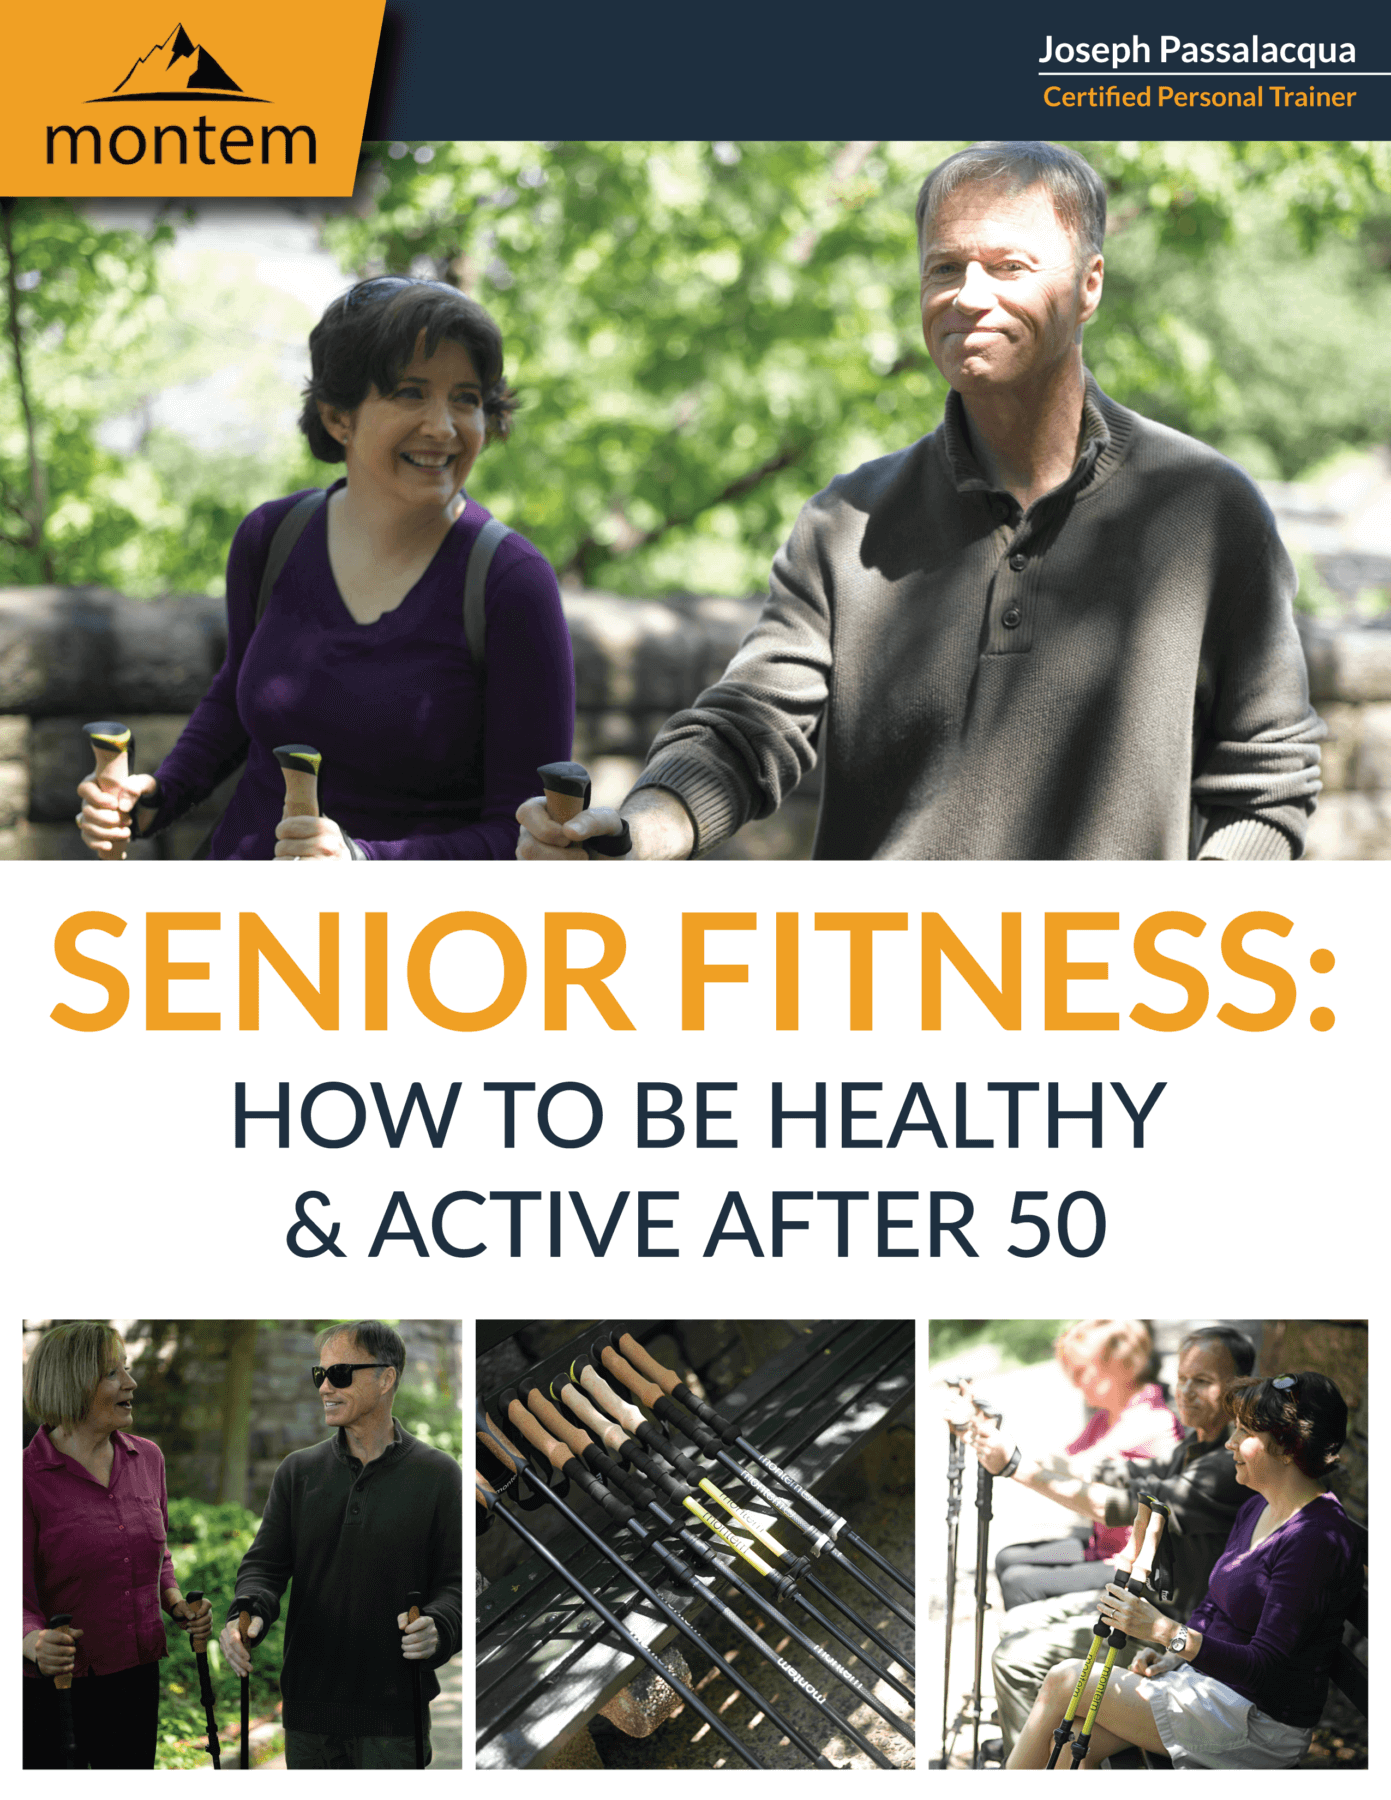 Senior Fitness: How To Be Healthy And Active (Ages 50+) (eBook Download - Printable)